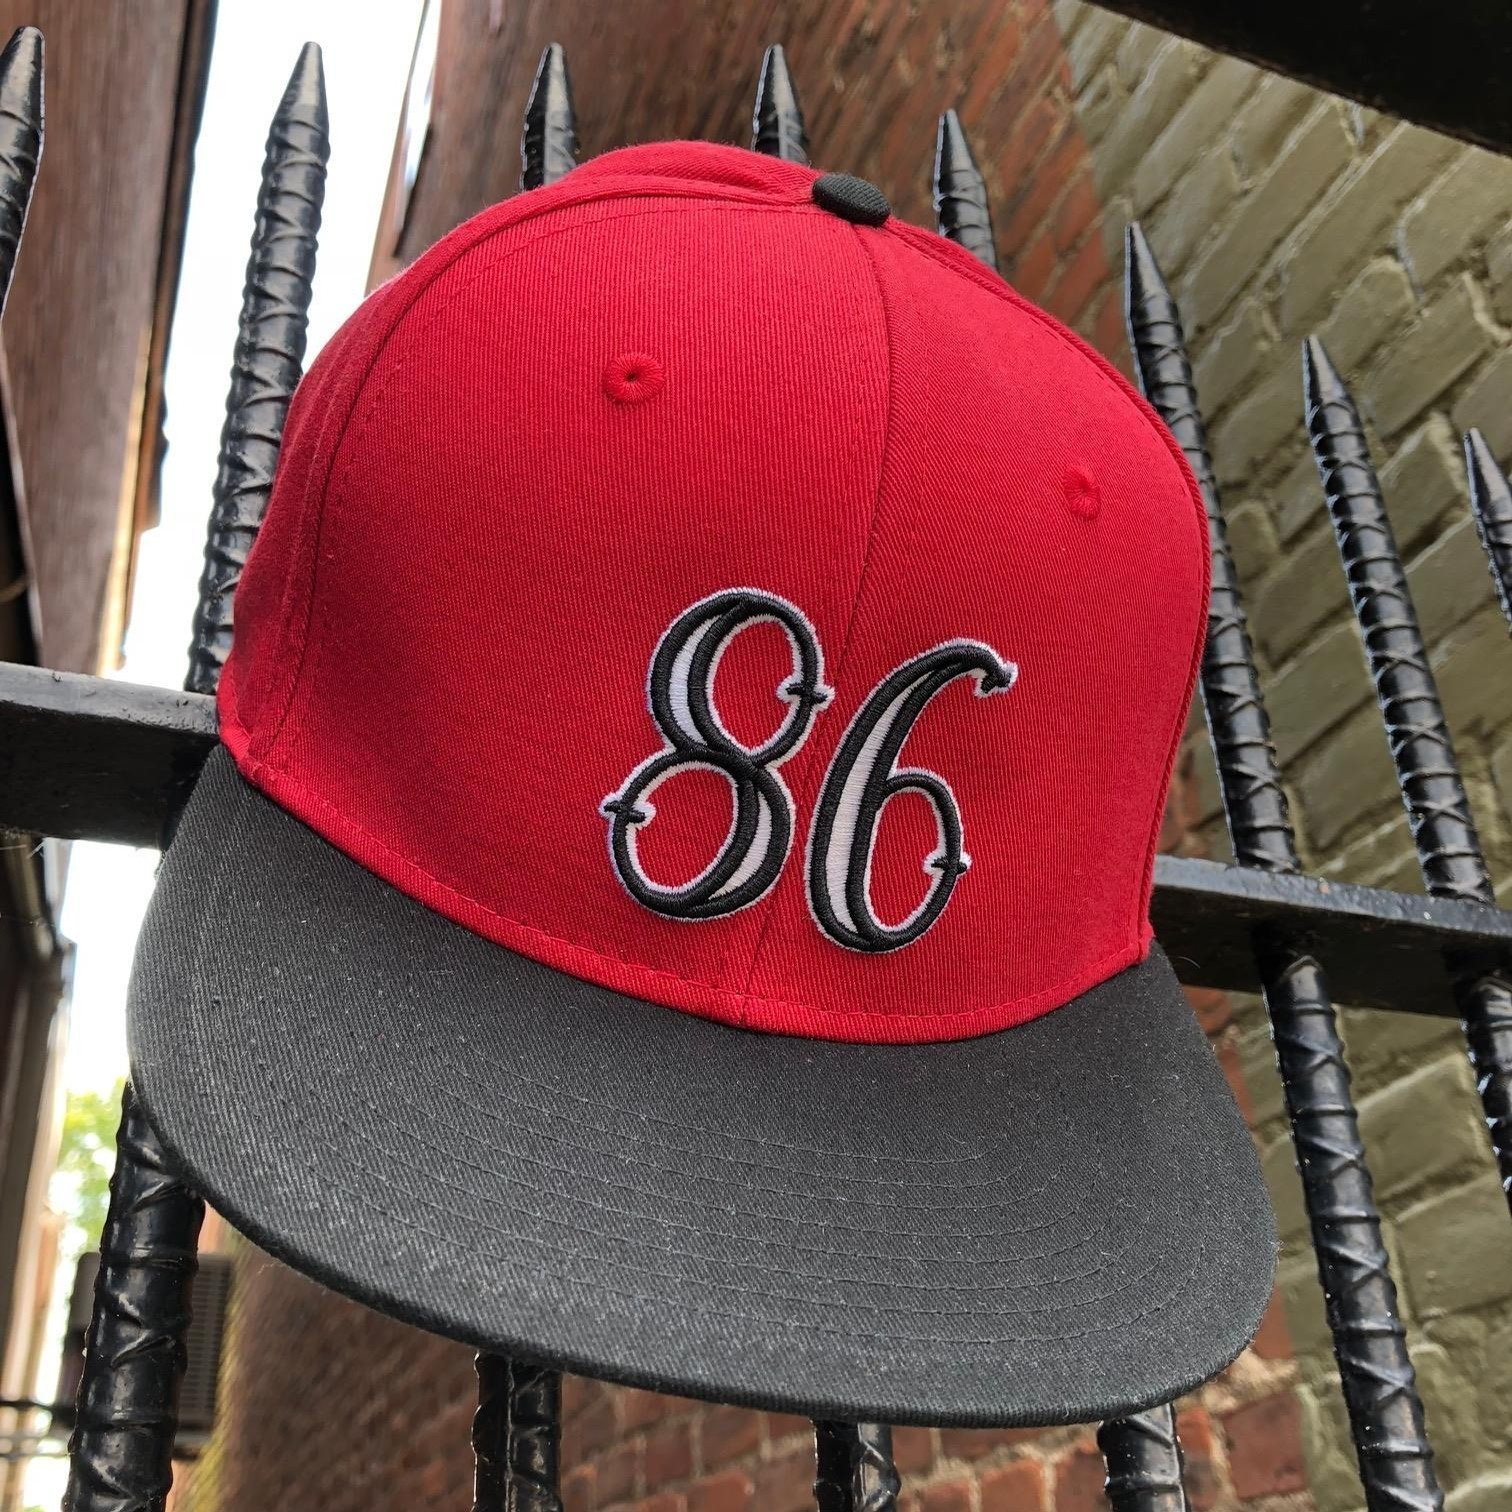 86 SNAPBACK (RED/BLACK/WHITE)